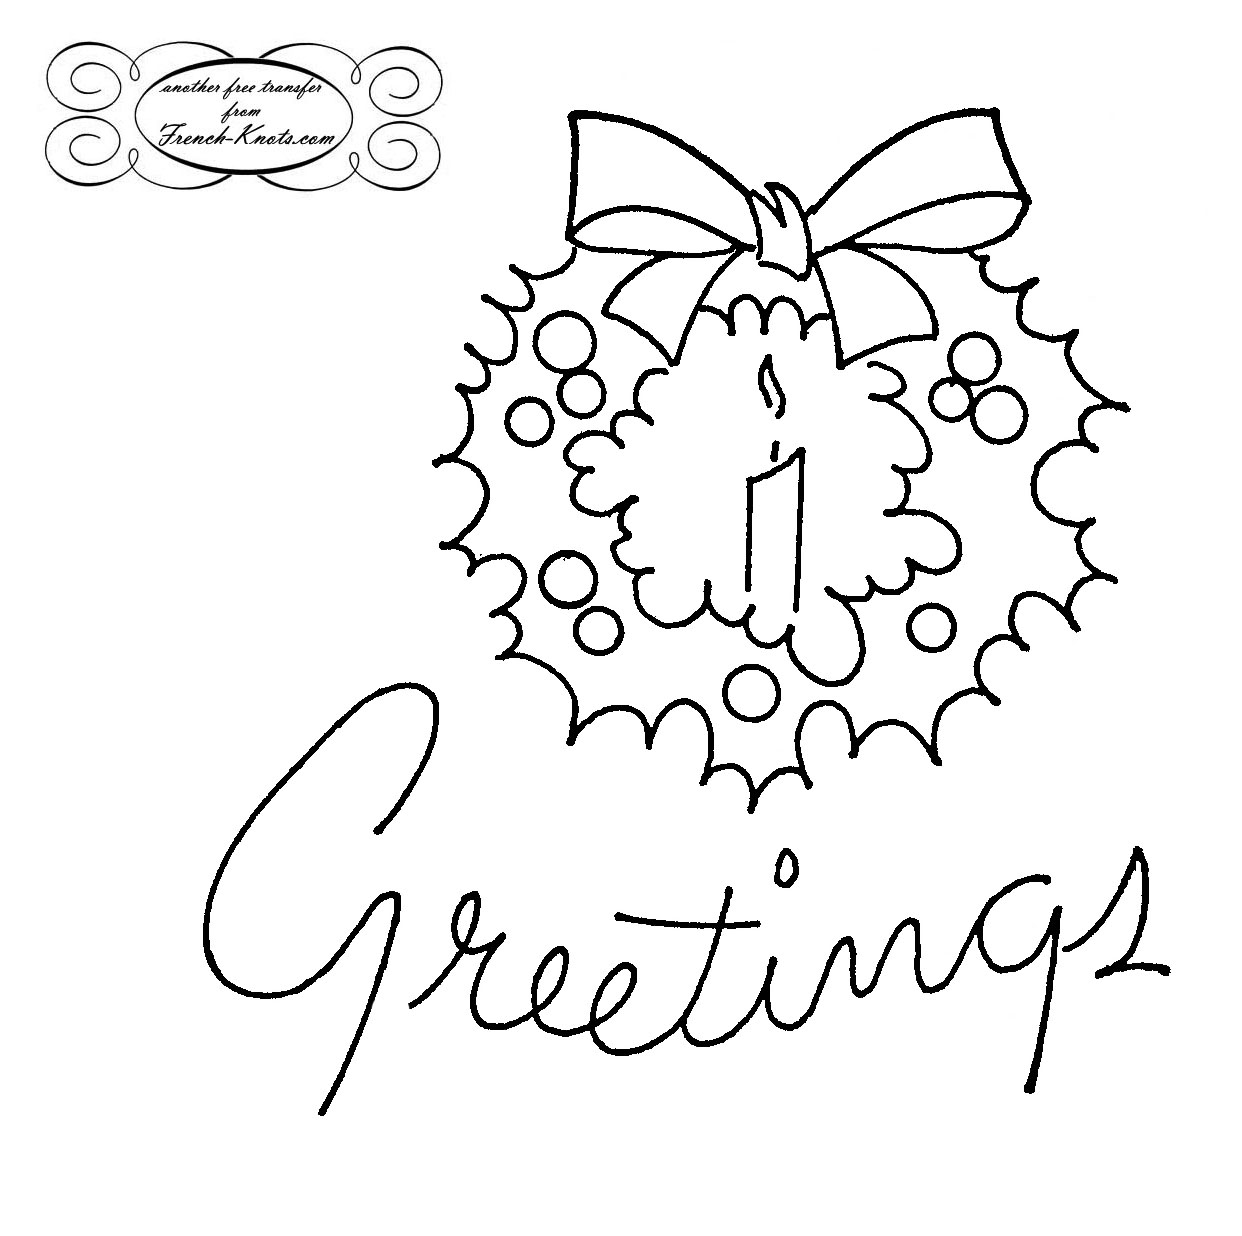 1242x1236 Christmas Greetings Embroidery Patterns